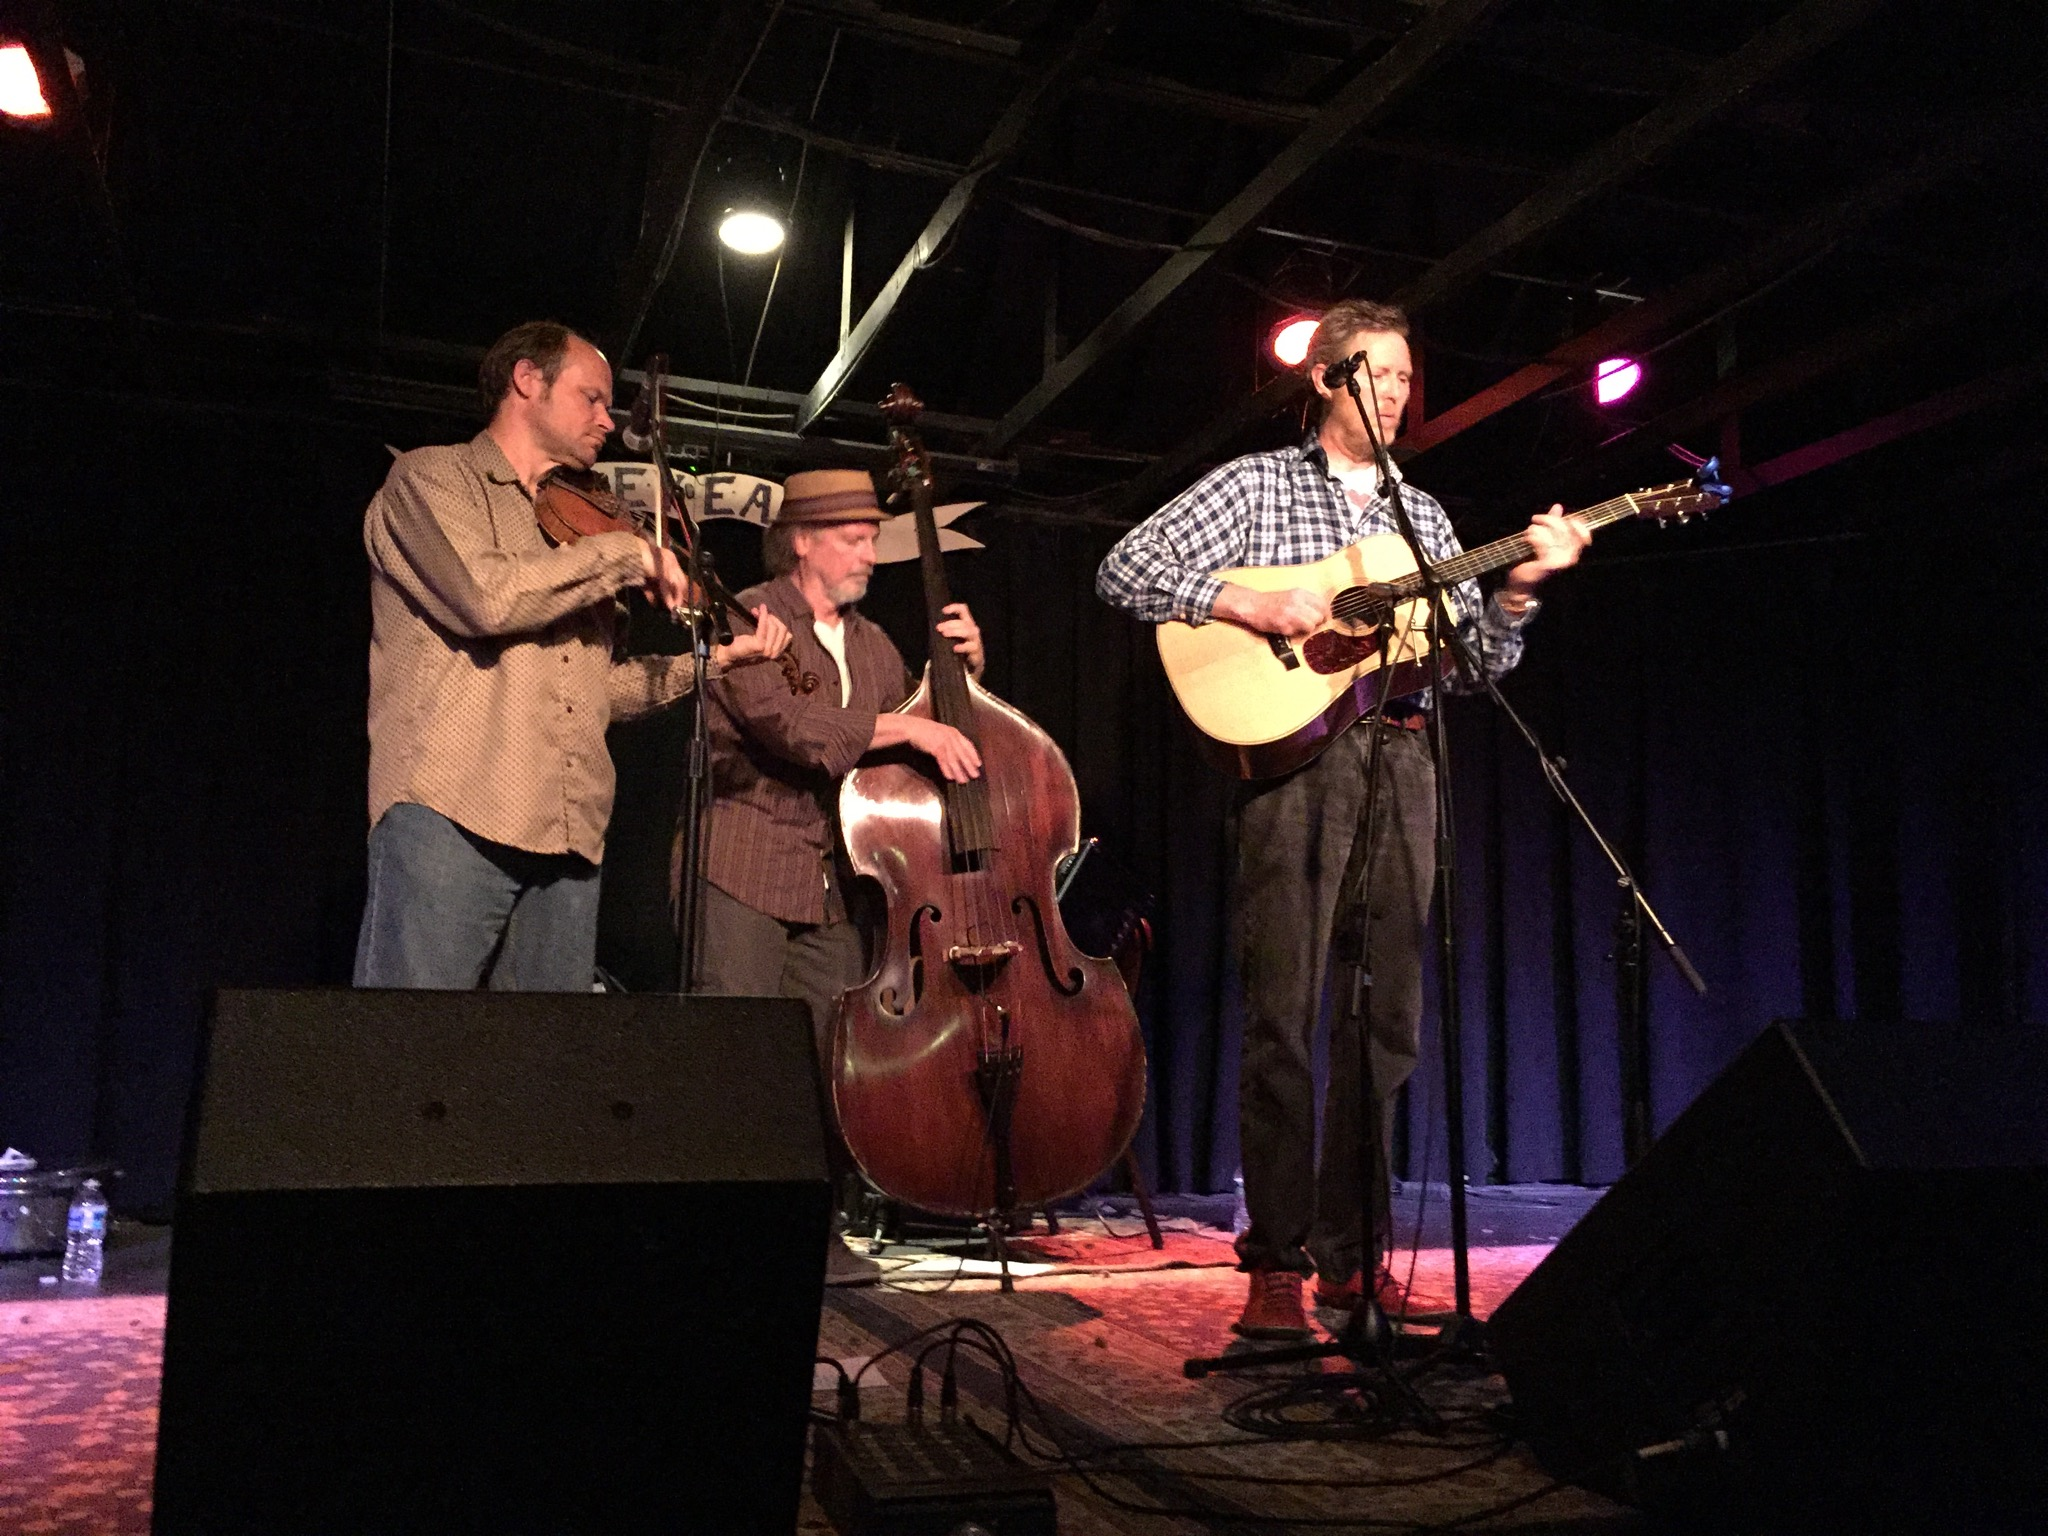 L-R: Shad Cobb, Todd Phillips, and Robbie Fulks at the Grey Eagle in Asheville, NC.  Photo taken by and the property of FourWalls.